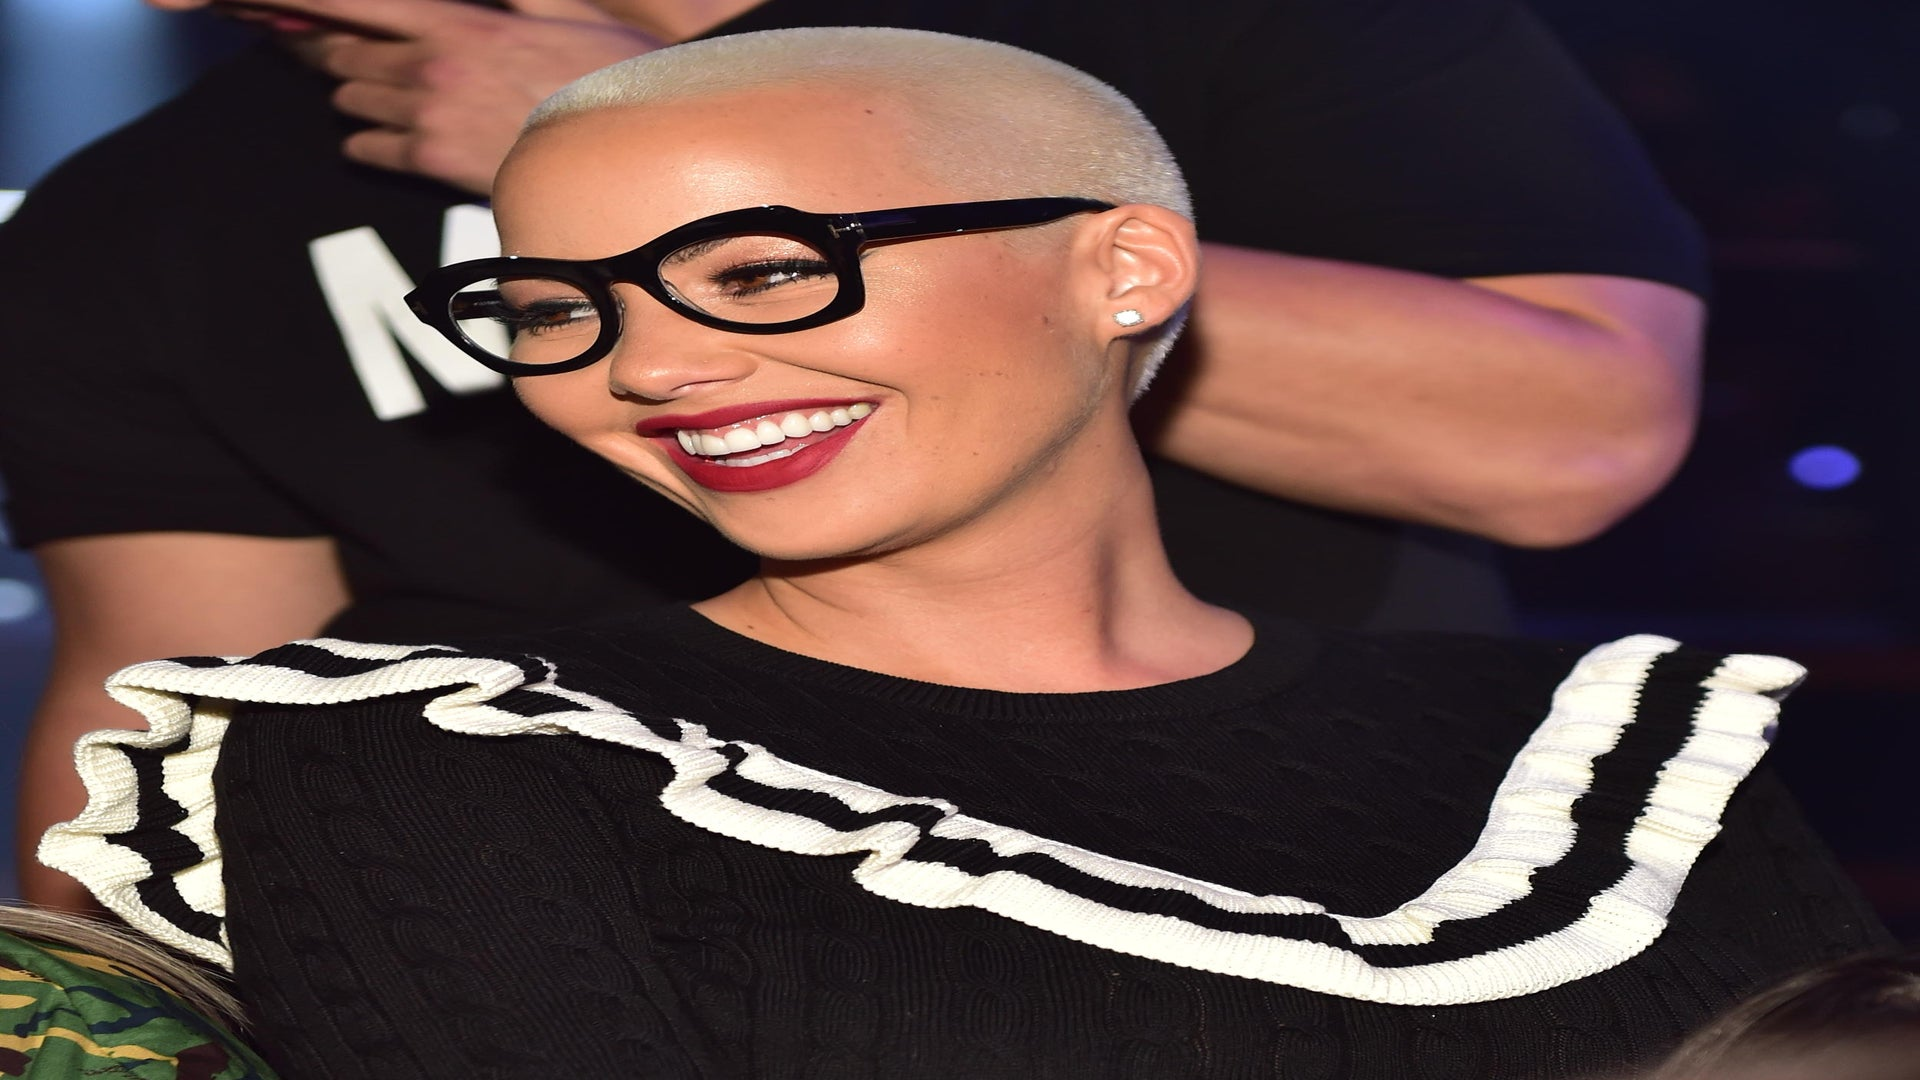 Amber Rose And K. Michelle Get Surgery For Major Reductions